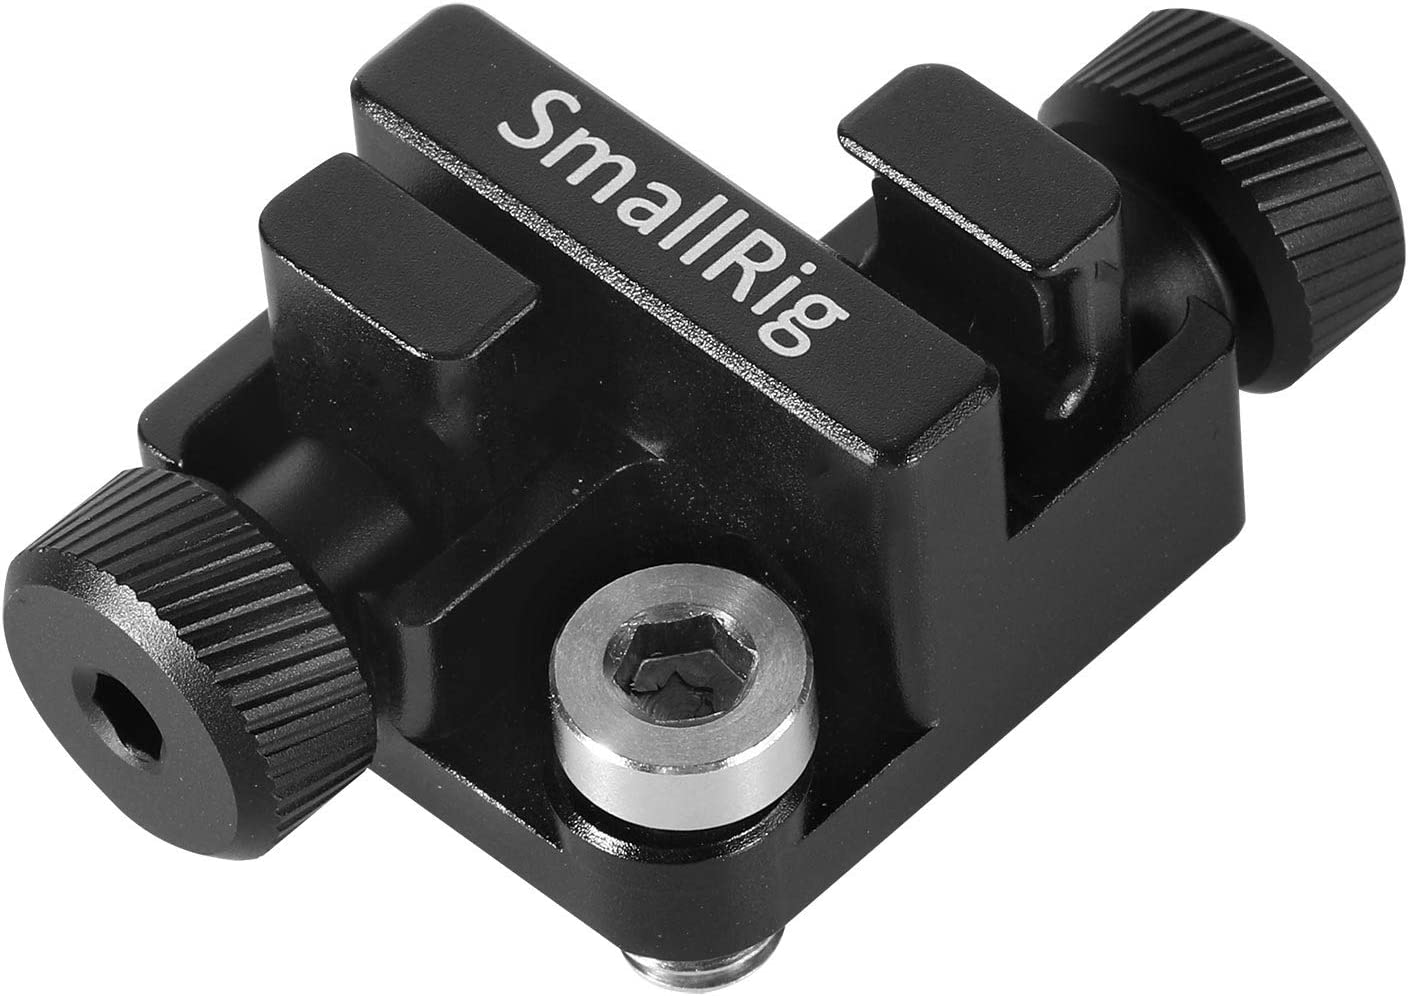 SMALLRIG Universal Cable Clamp Lock para cable hdmi sdi